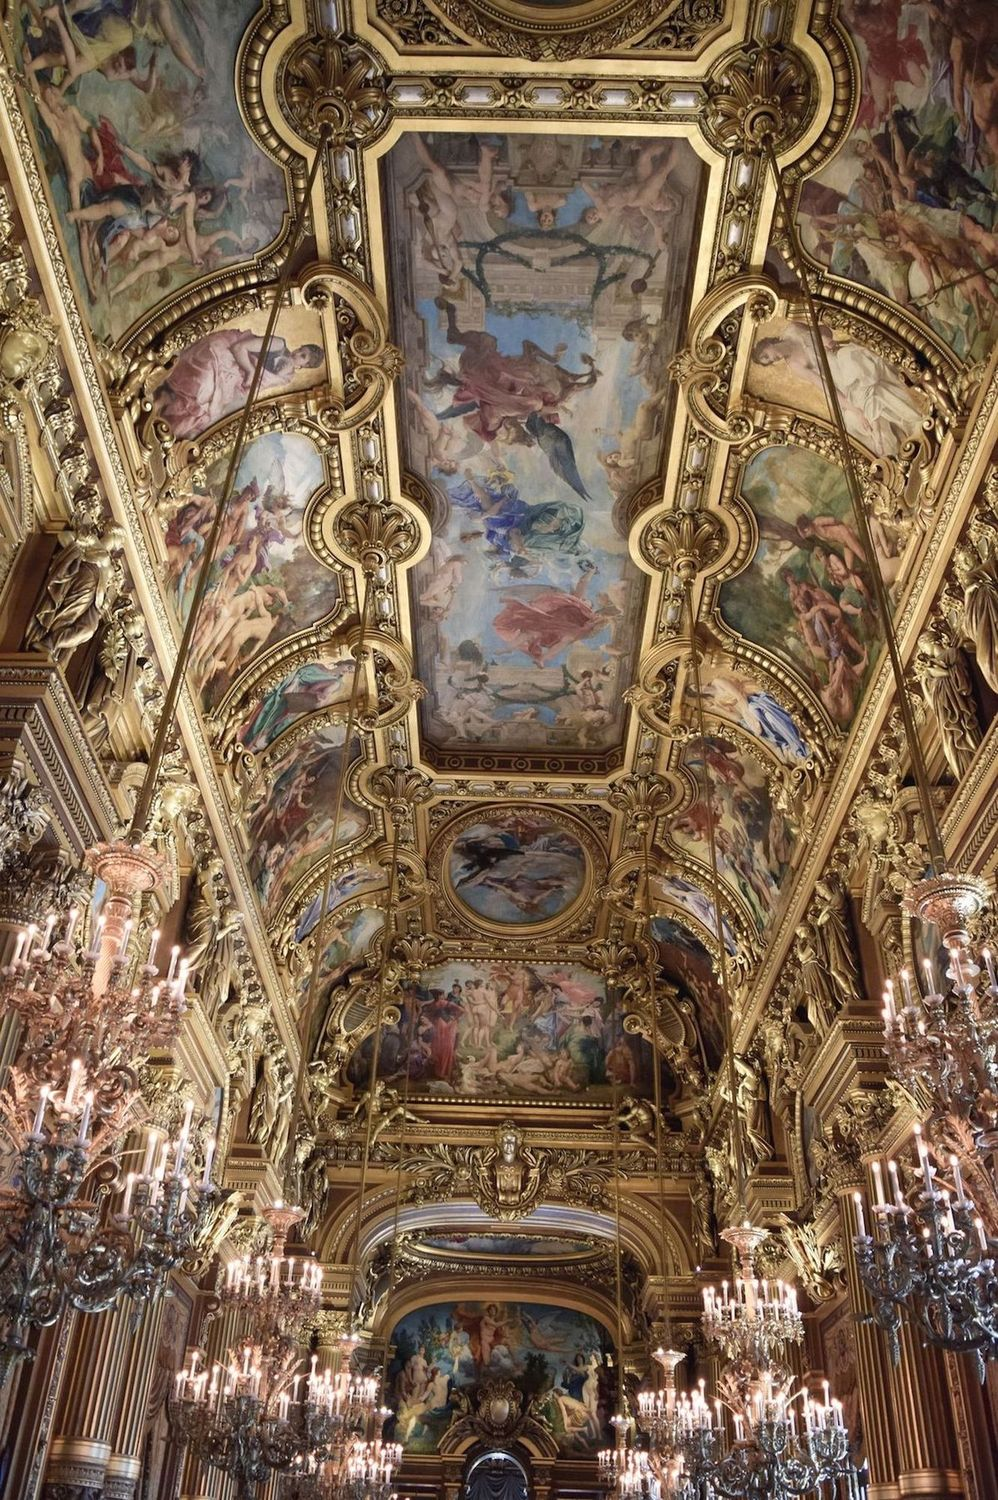 Grand Foyer with paintings by Paul Baudry in Palais Garnier Paris